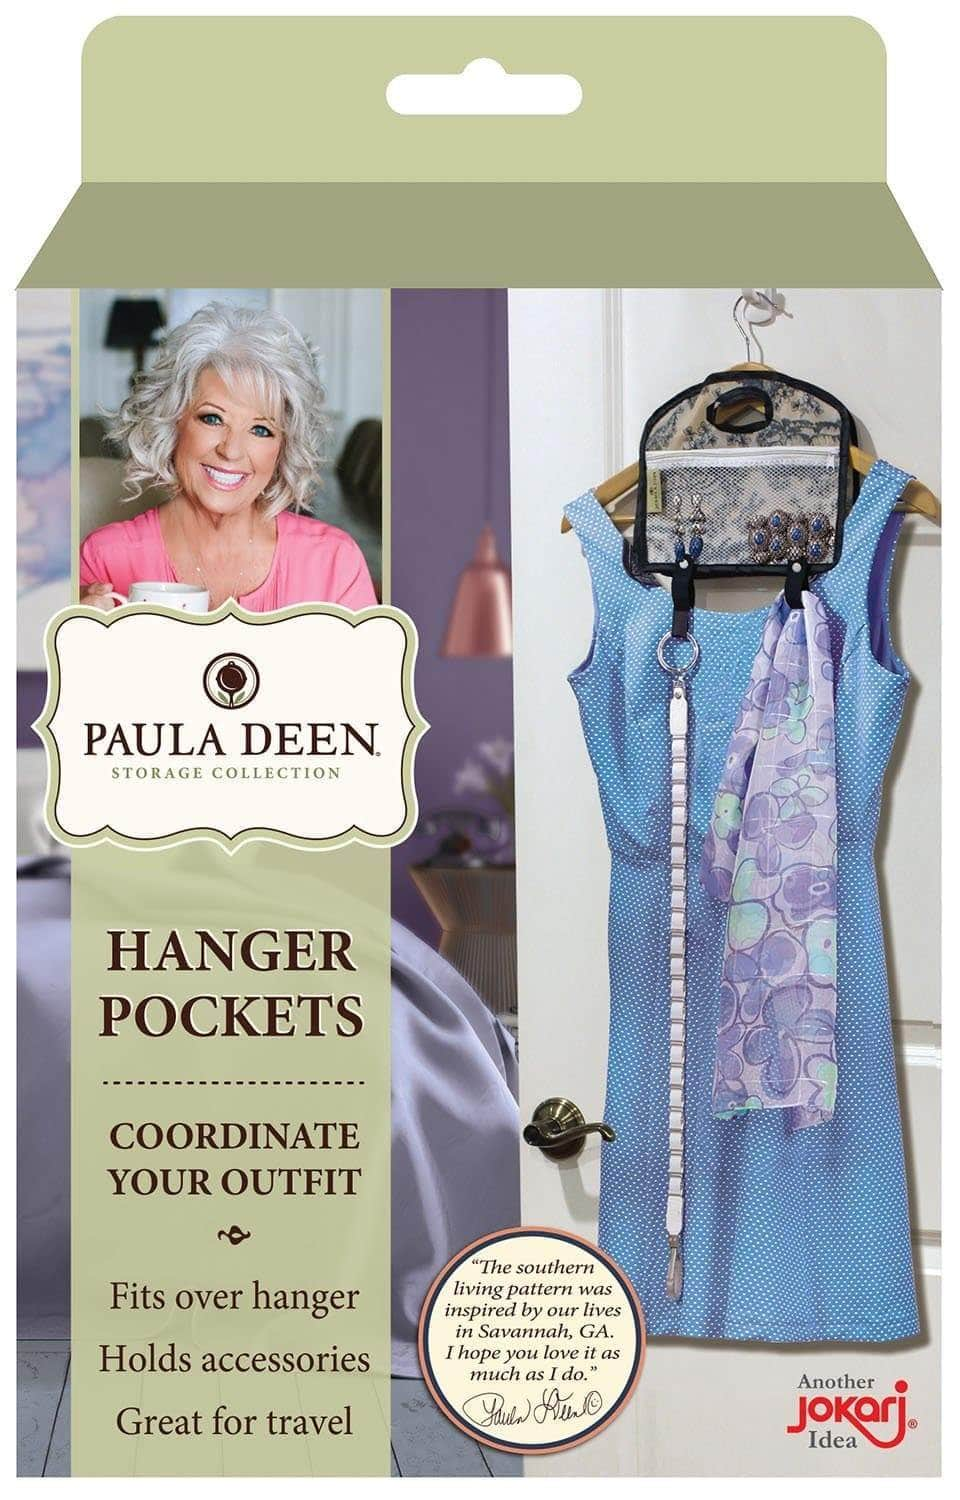 Budget friendly paula deen hanger pocket organizer storage hanging accessory holder fits all of your outfit accessories organize daily clothing and wardrobe coordinating a scarf handbag jewelry and clothing